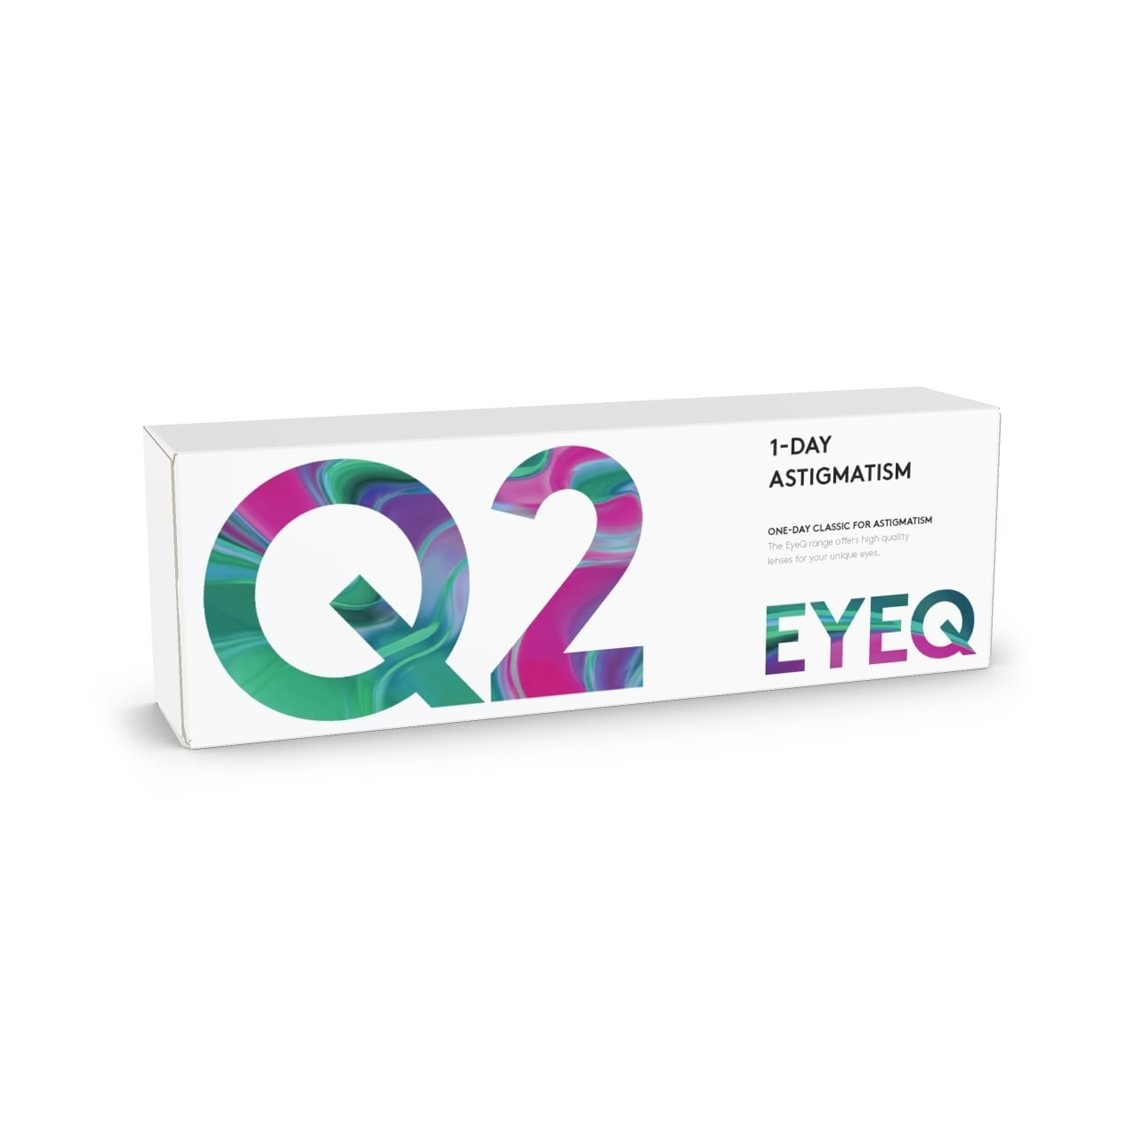 EyeQ One-Day Classic For Astigmatism Q2 30 st/box